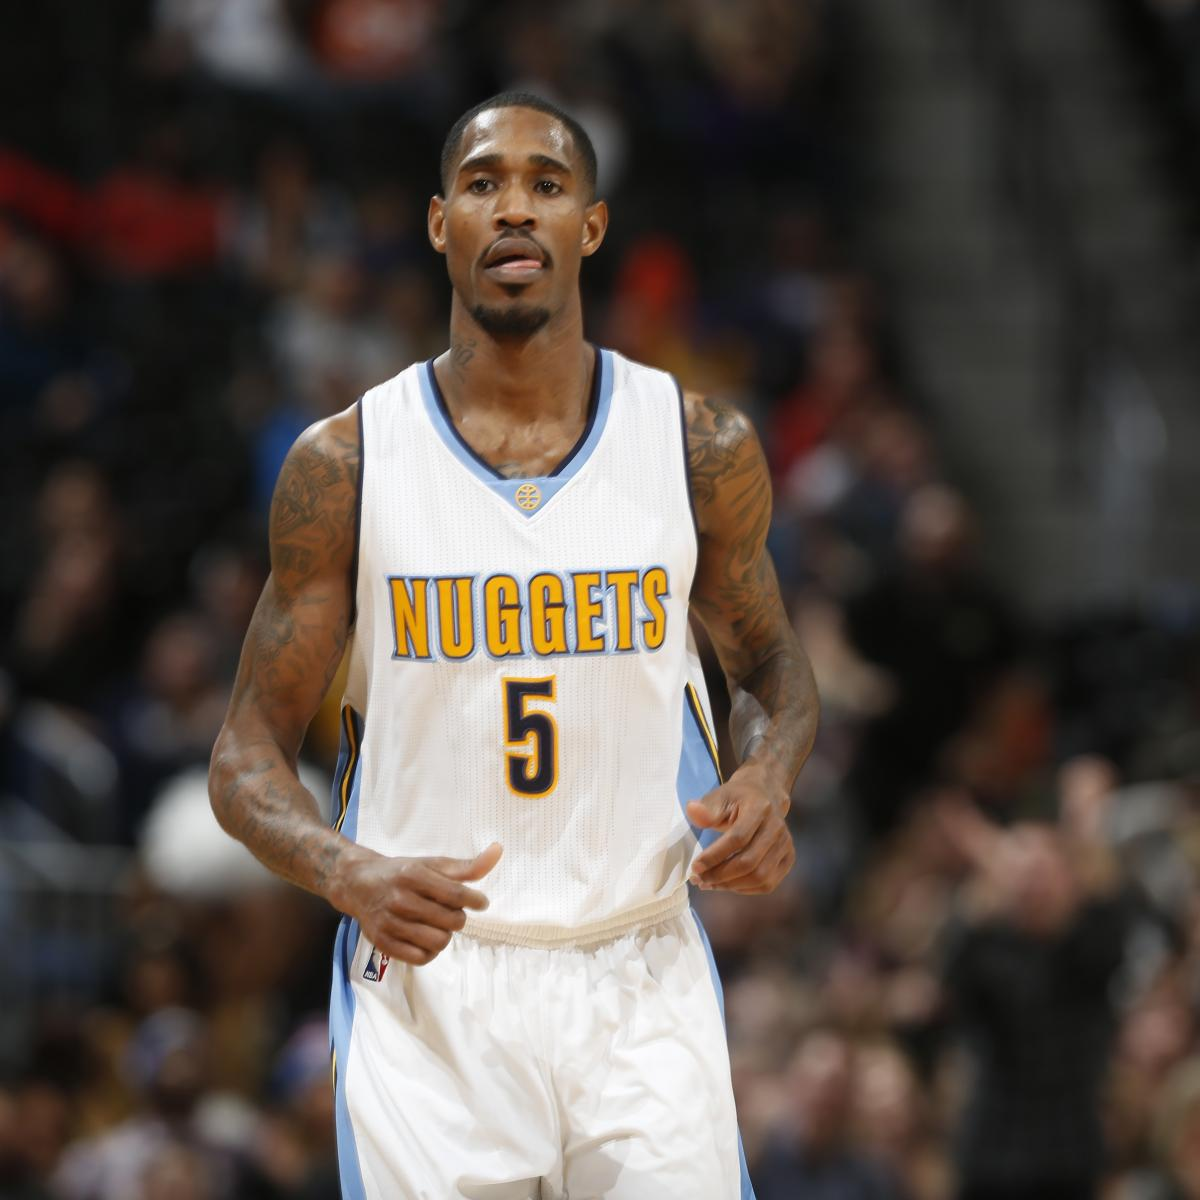 Nuggets Rumors: Will Barton Trade Rumors: Latest News, Speculation On